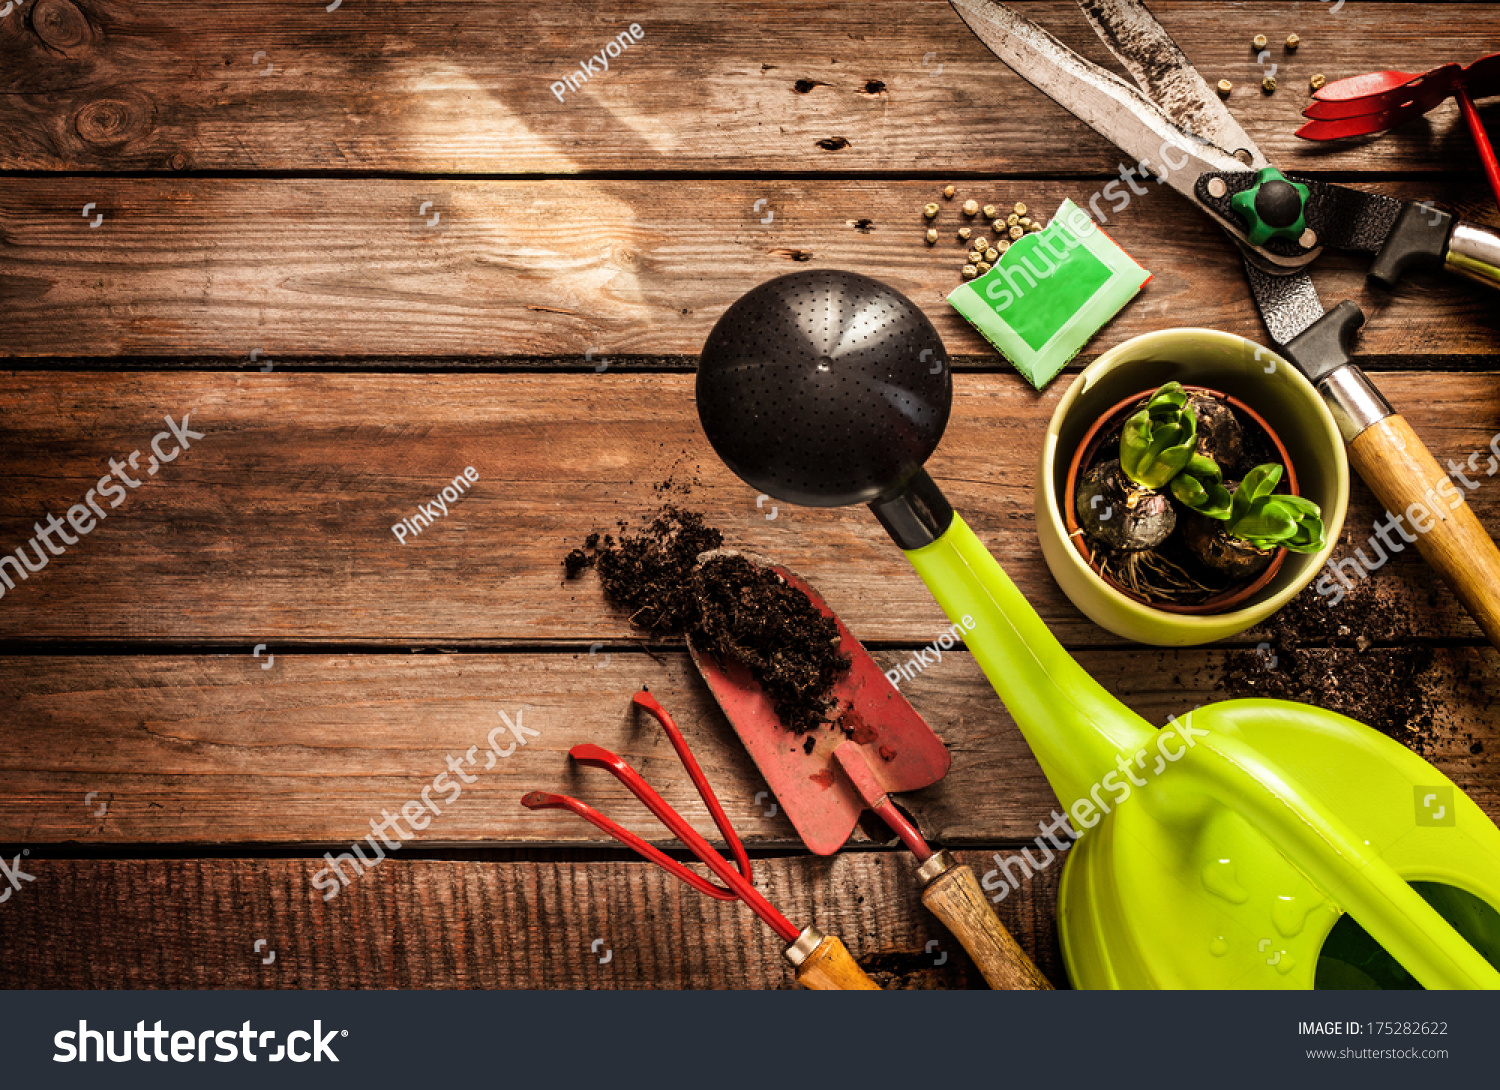 Gardening tools watering can seeds plants stock photo for Gardening tools watering